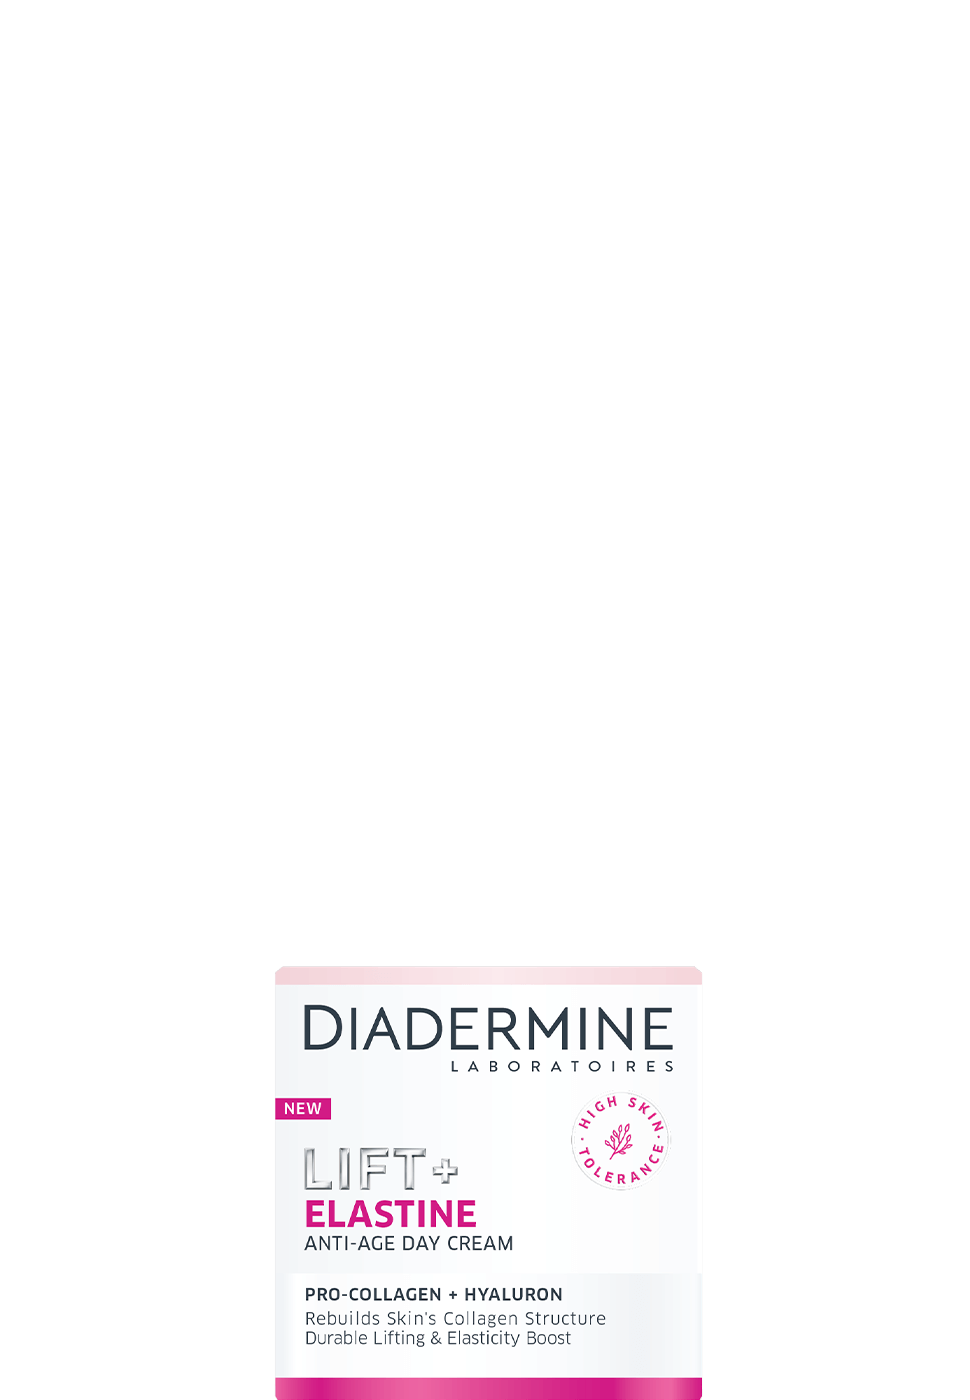 diadermine_com_lift_plus_elastine_day_cream_970x1400